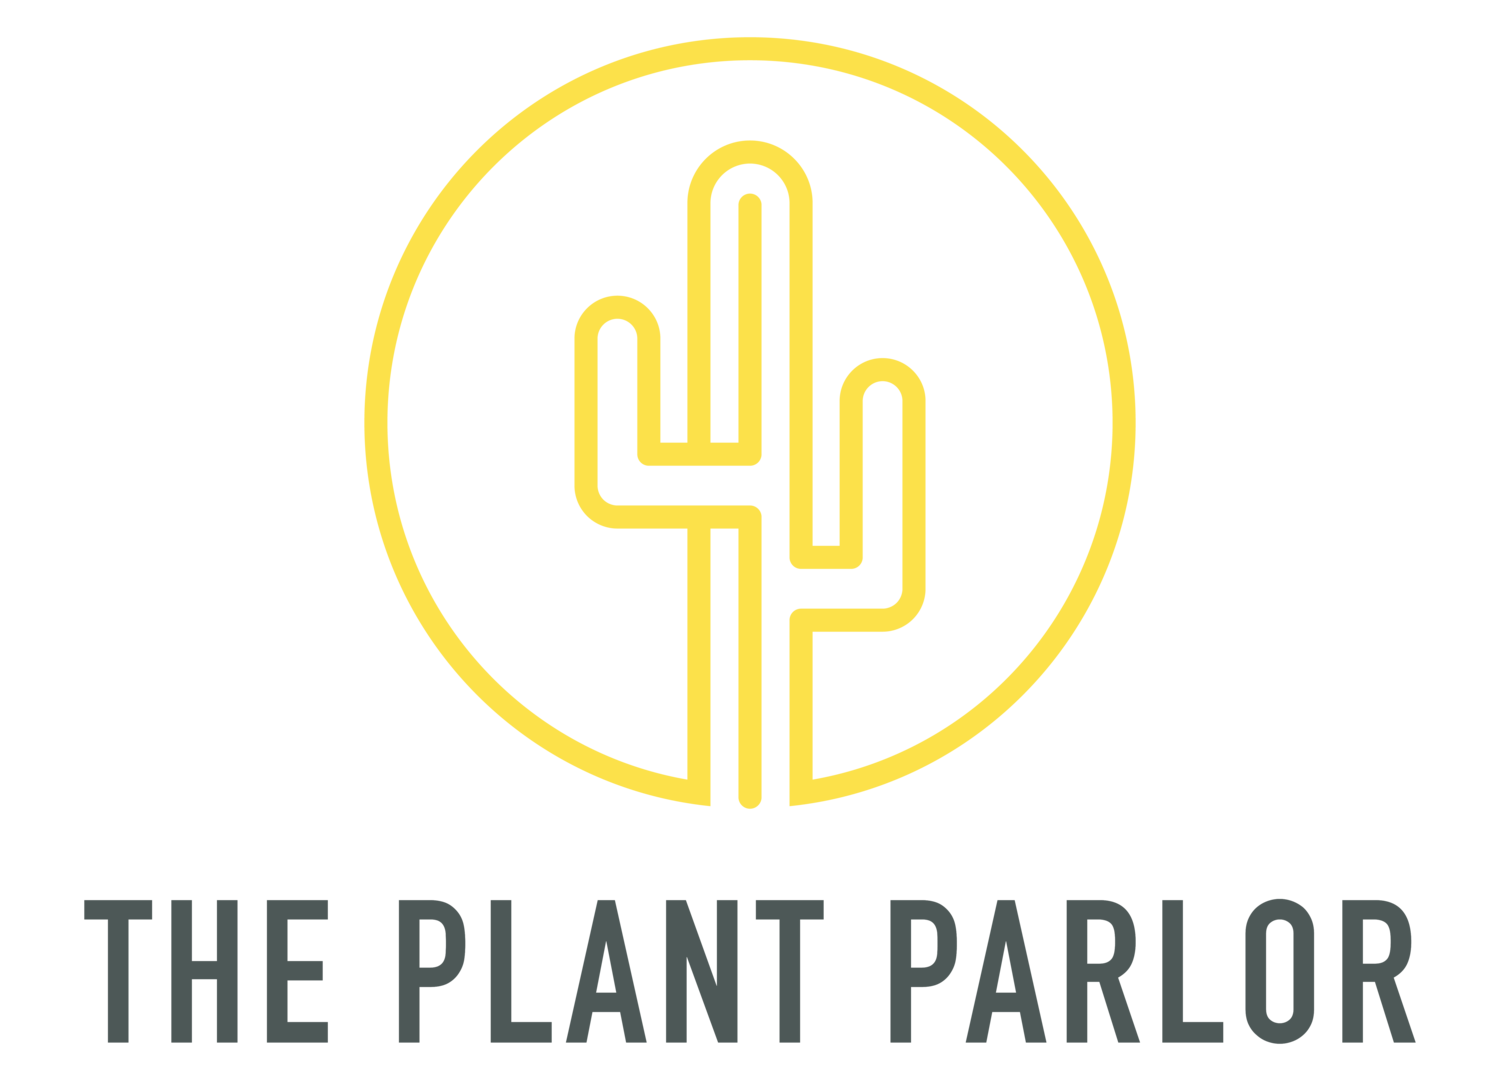 The Plant Parlor